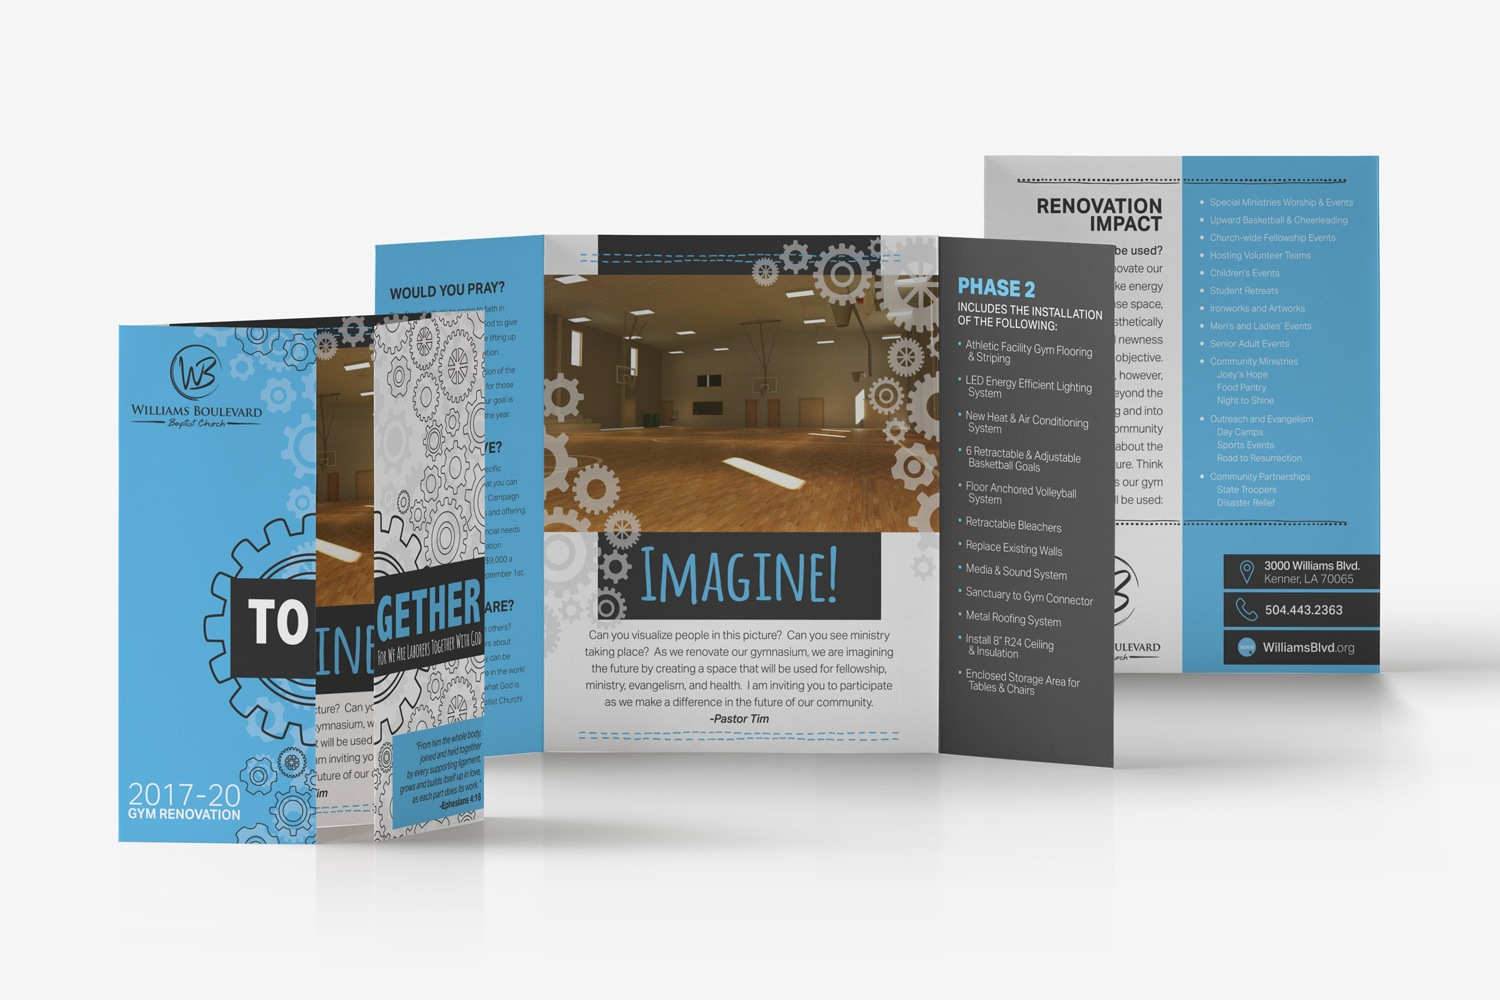 church marketing brochure open-gate fold design for outreach ideas